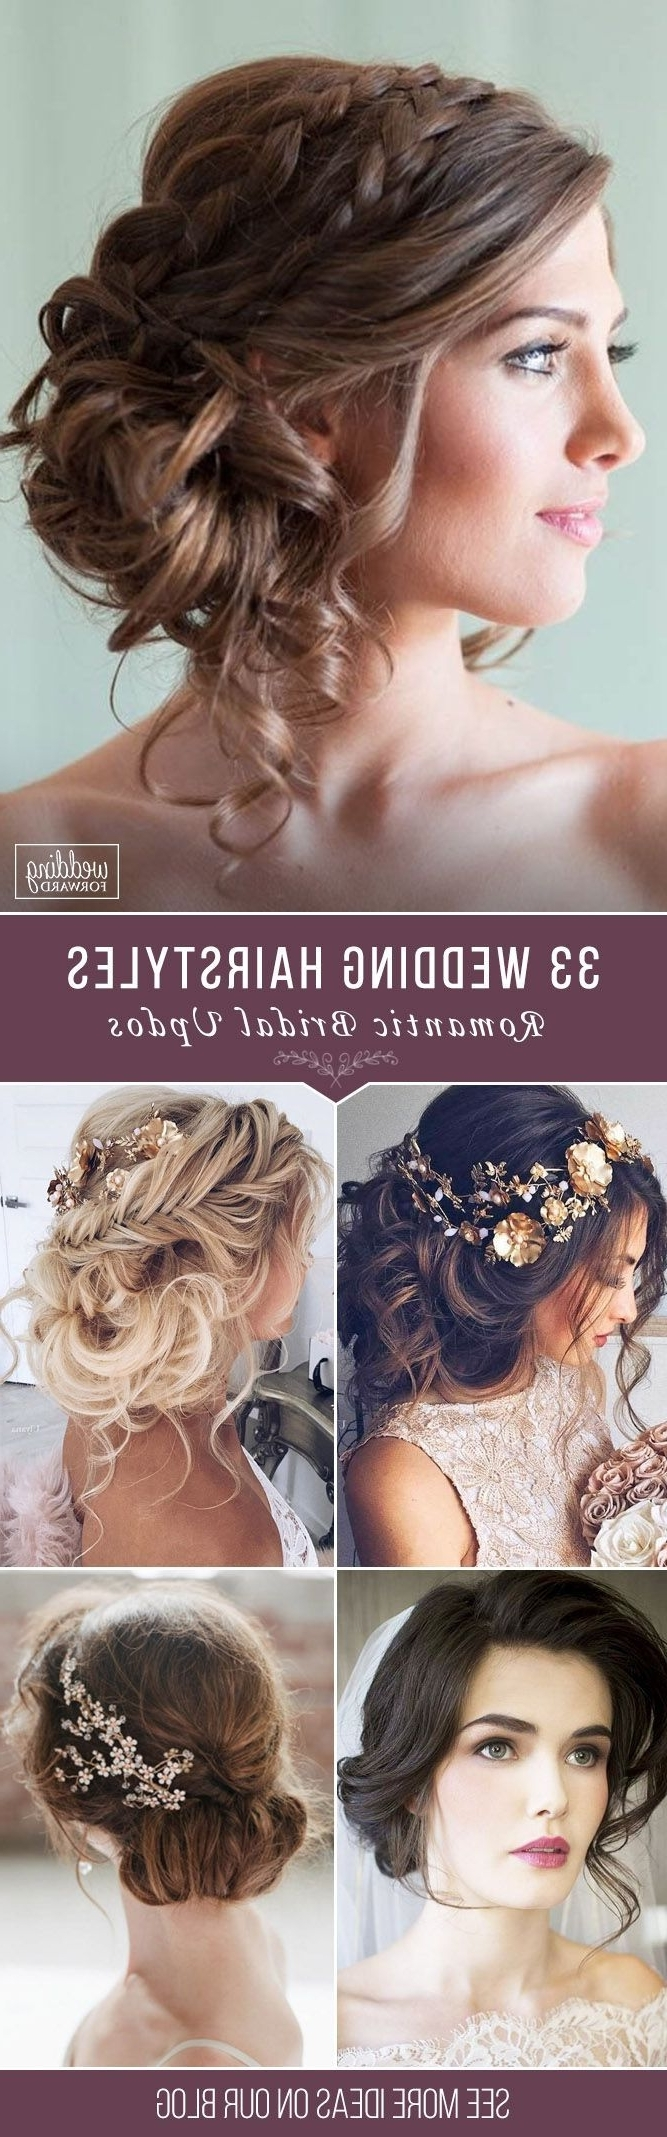 Most Popular Updo With Forward Braided Bun Pertaining To Bridal Hairstyles : 33 Wedding Hairstyles – Romantic Bridal Updos (View 9 of 15)